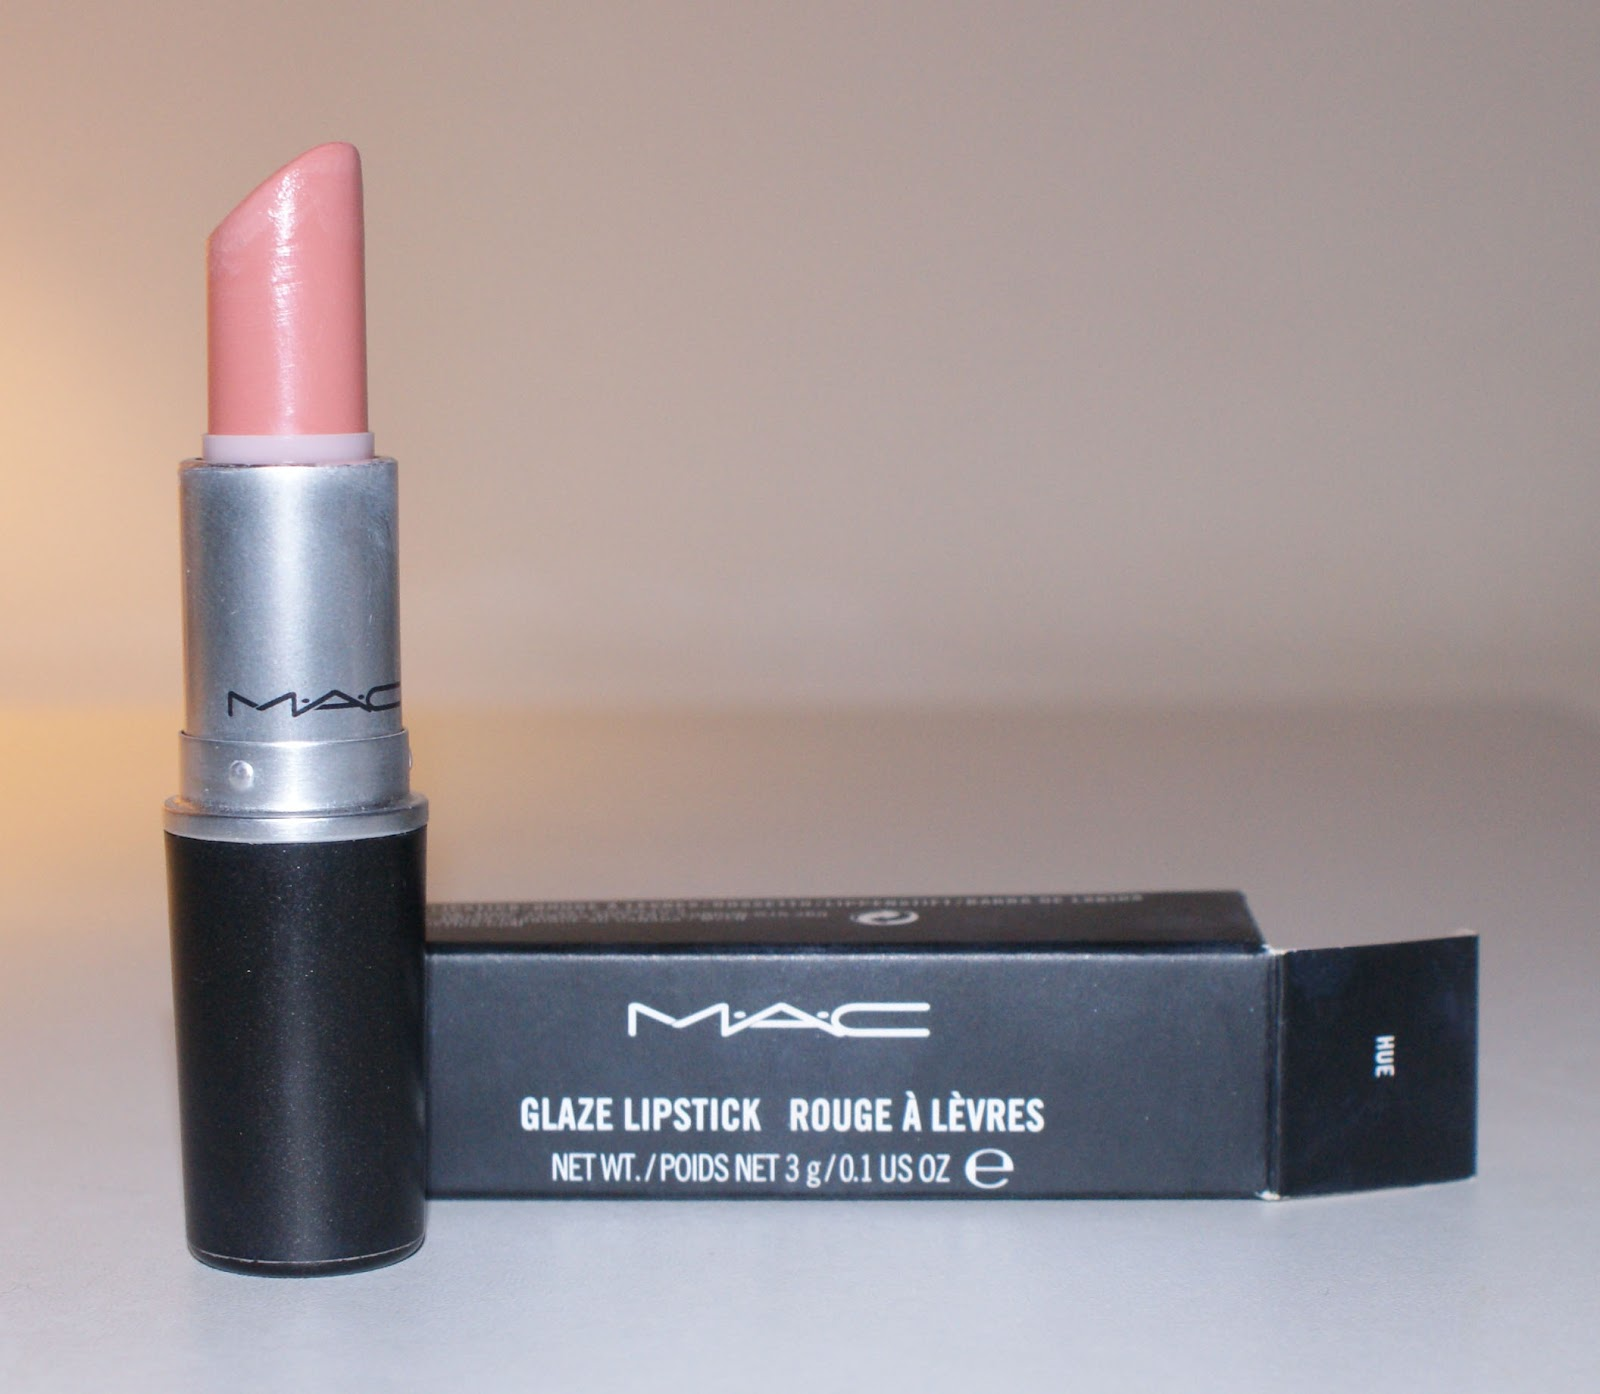 LipsticksandNotebooks: Hue Mac Lipstick Review